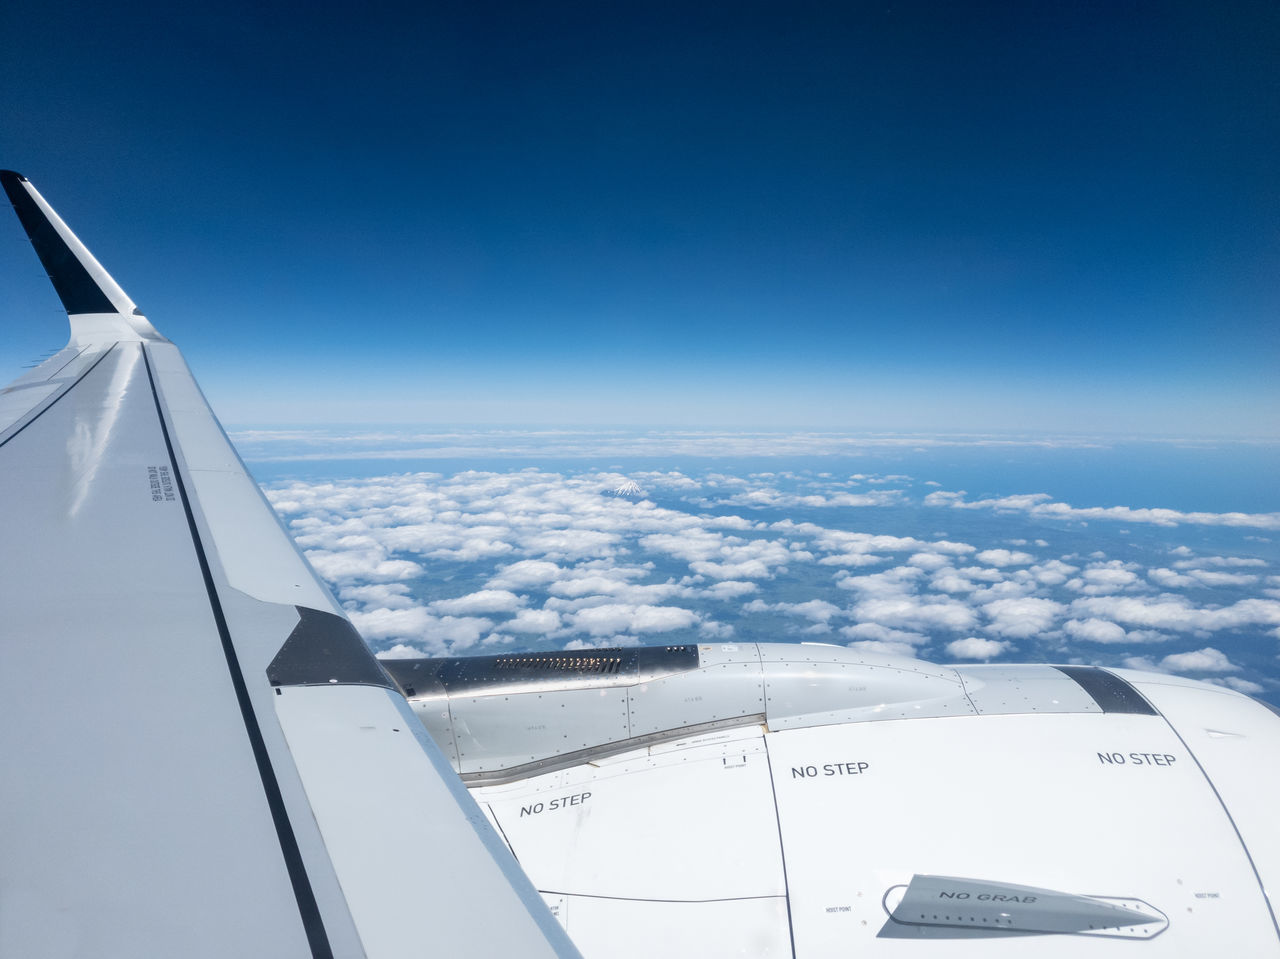 AERIAL VIEW OF AIRPLANE FLYING OVER CLOUDS